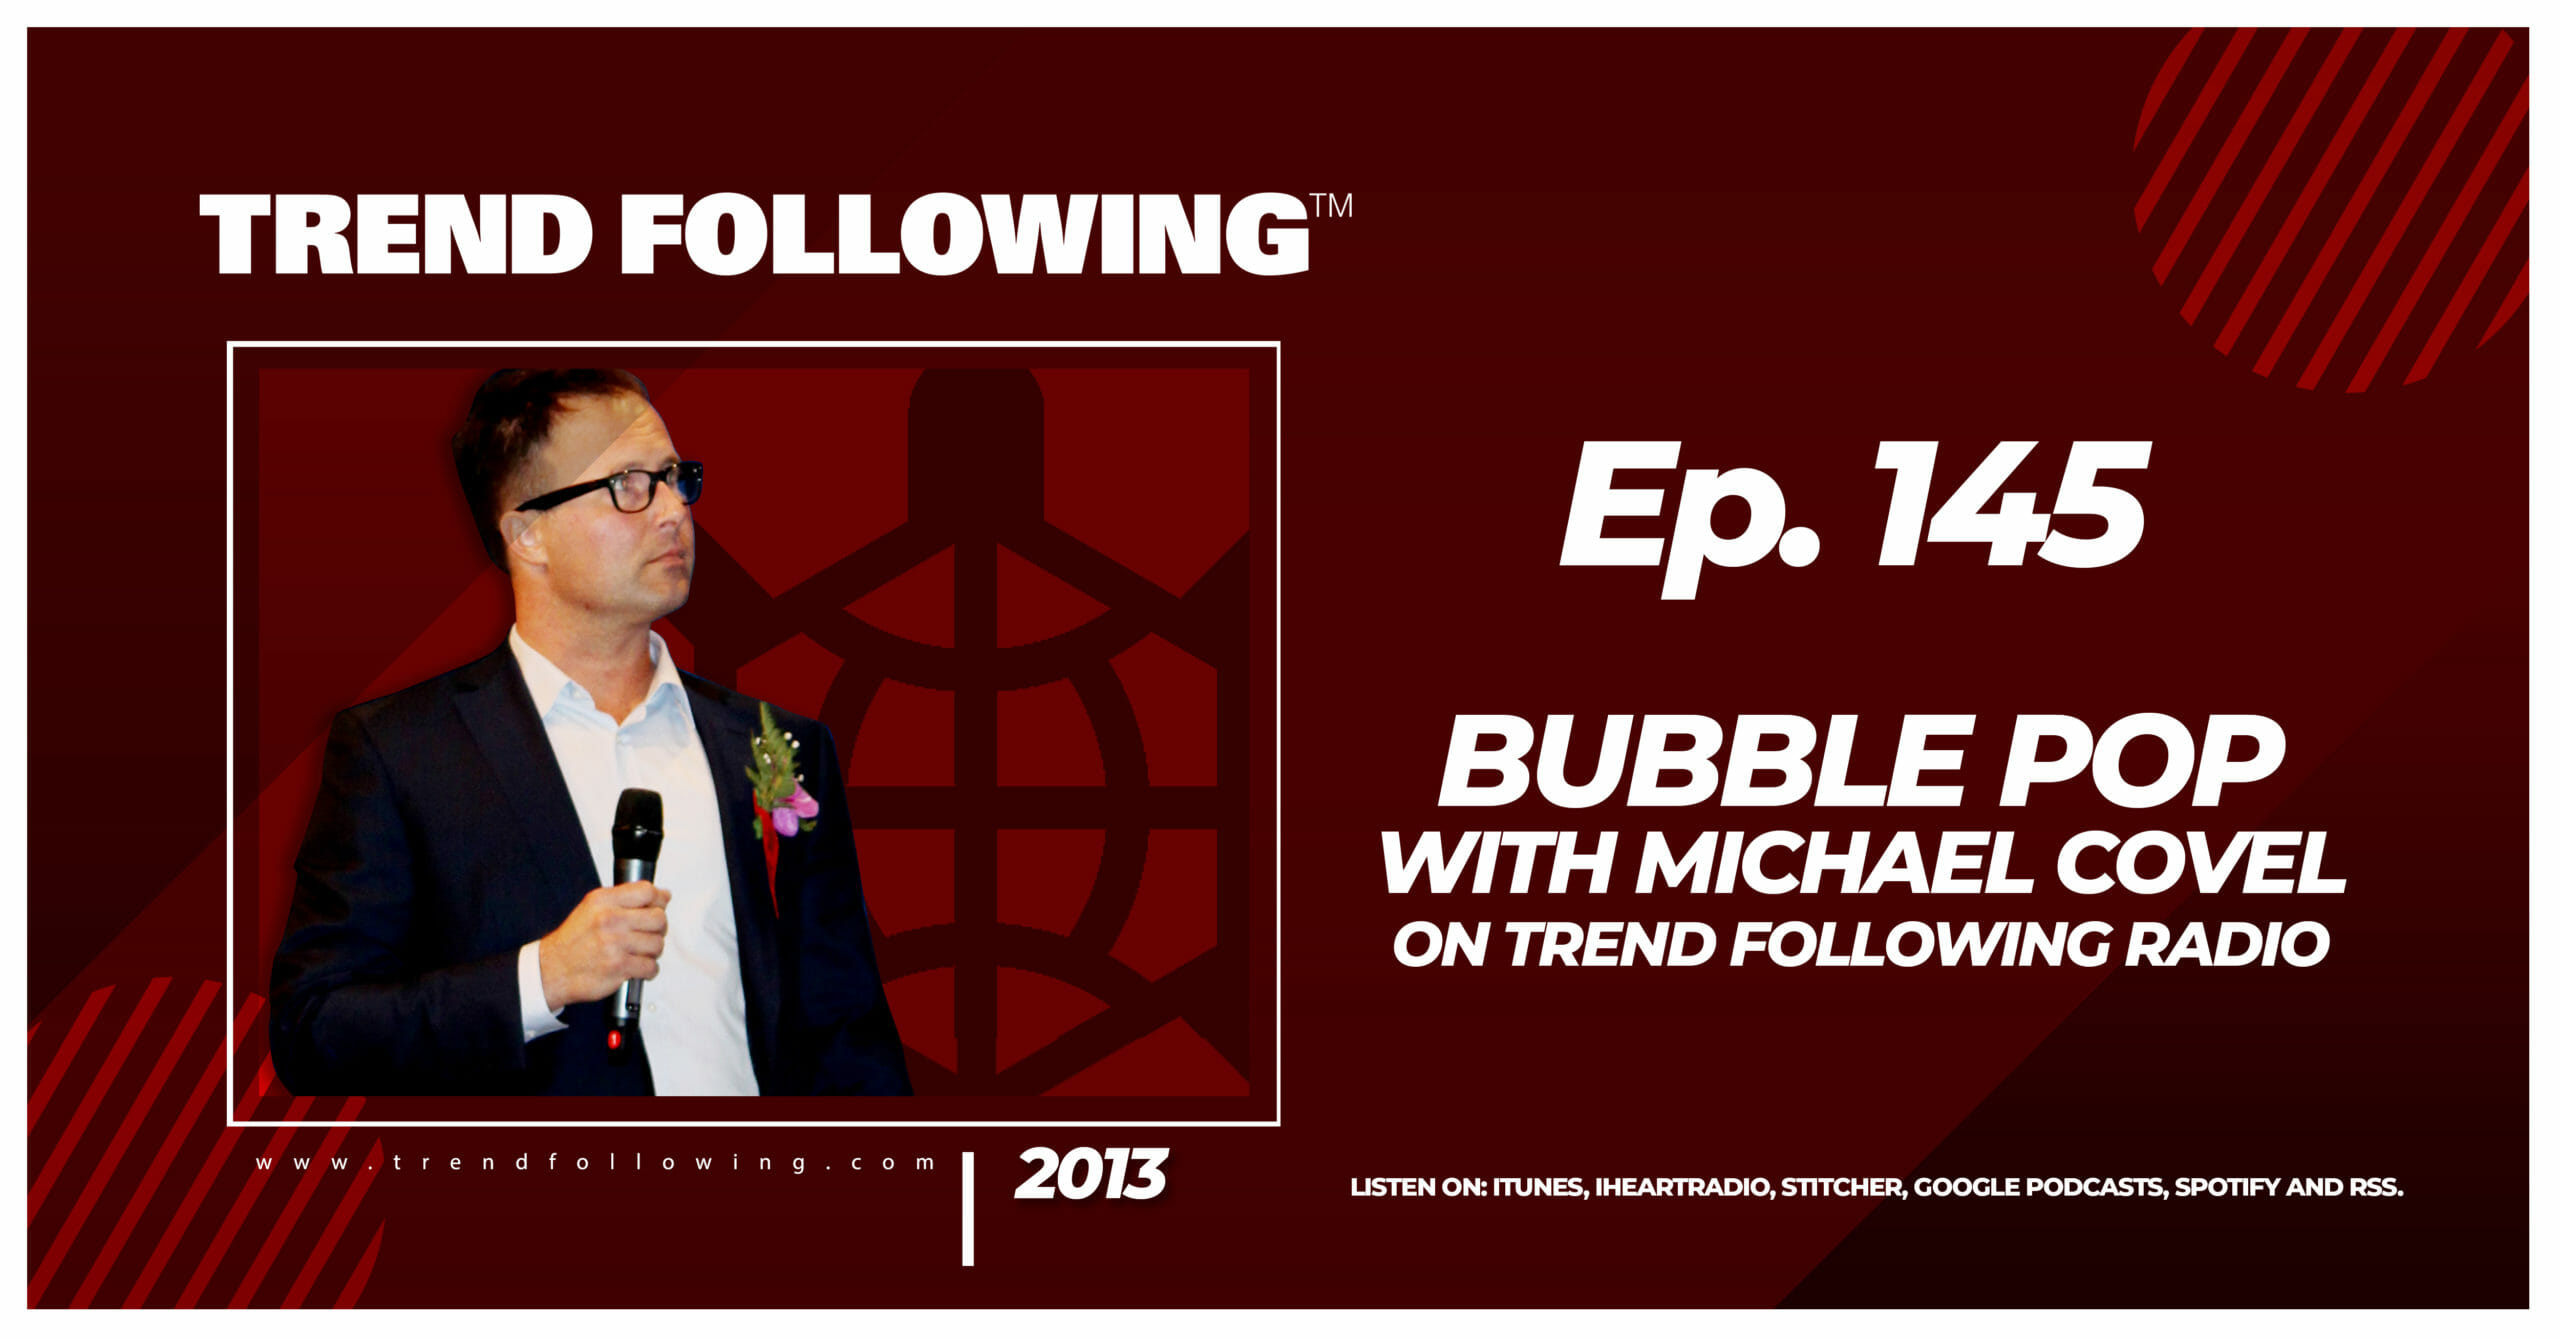 Bubble Pop with Michael Covel on Trend Following Radio